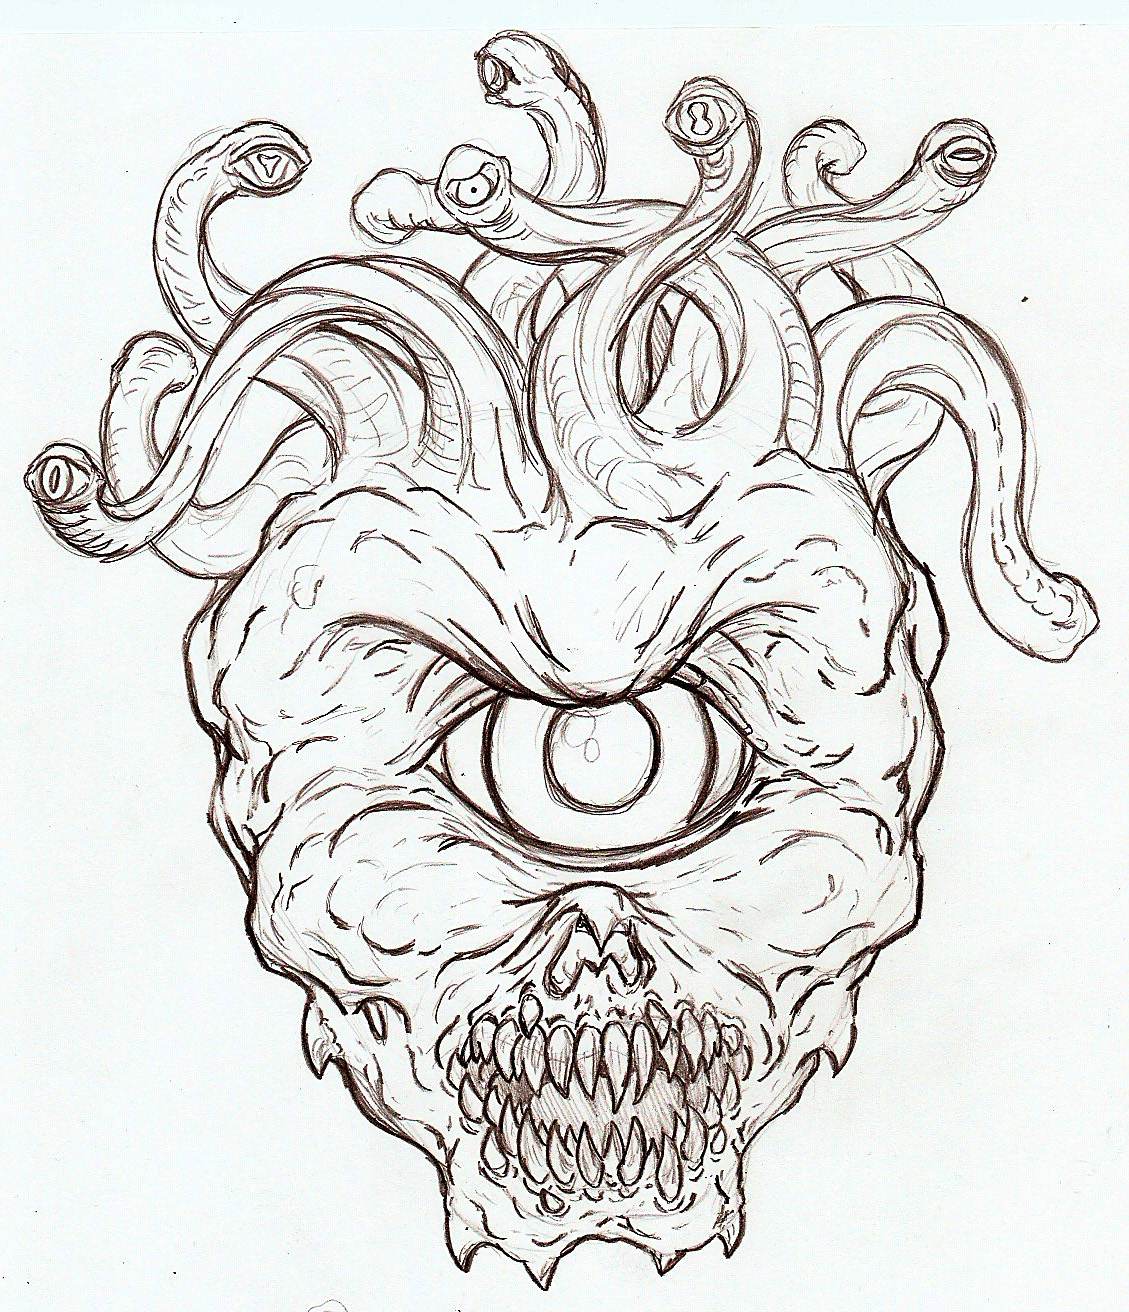 Scary Eyes Drawing at GetDrawings.com | Free for personal use Scary ...